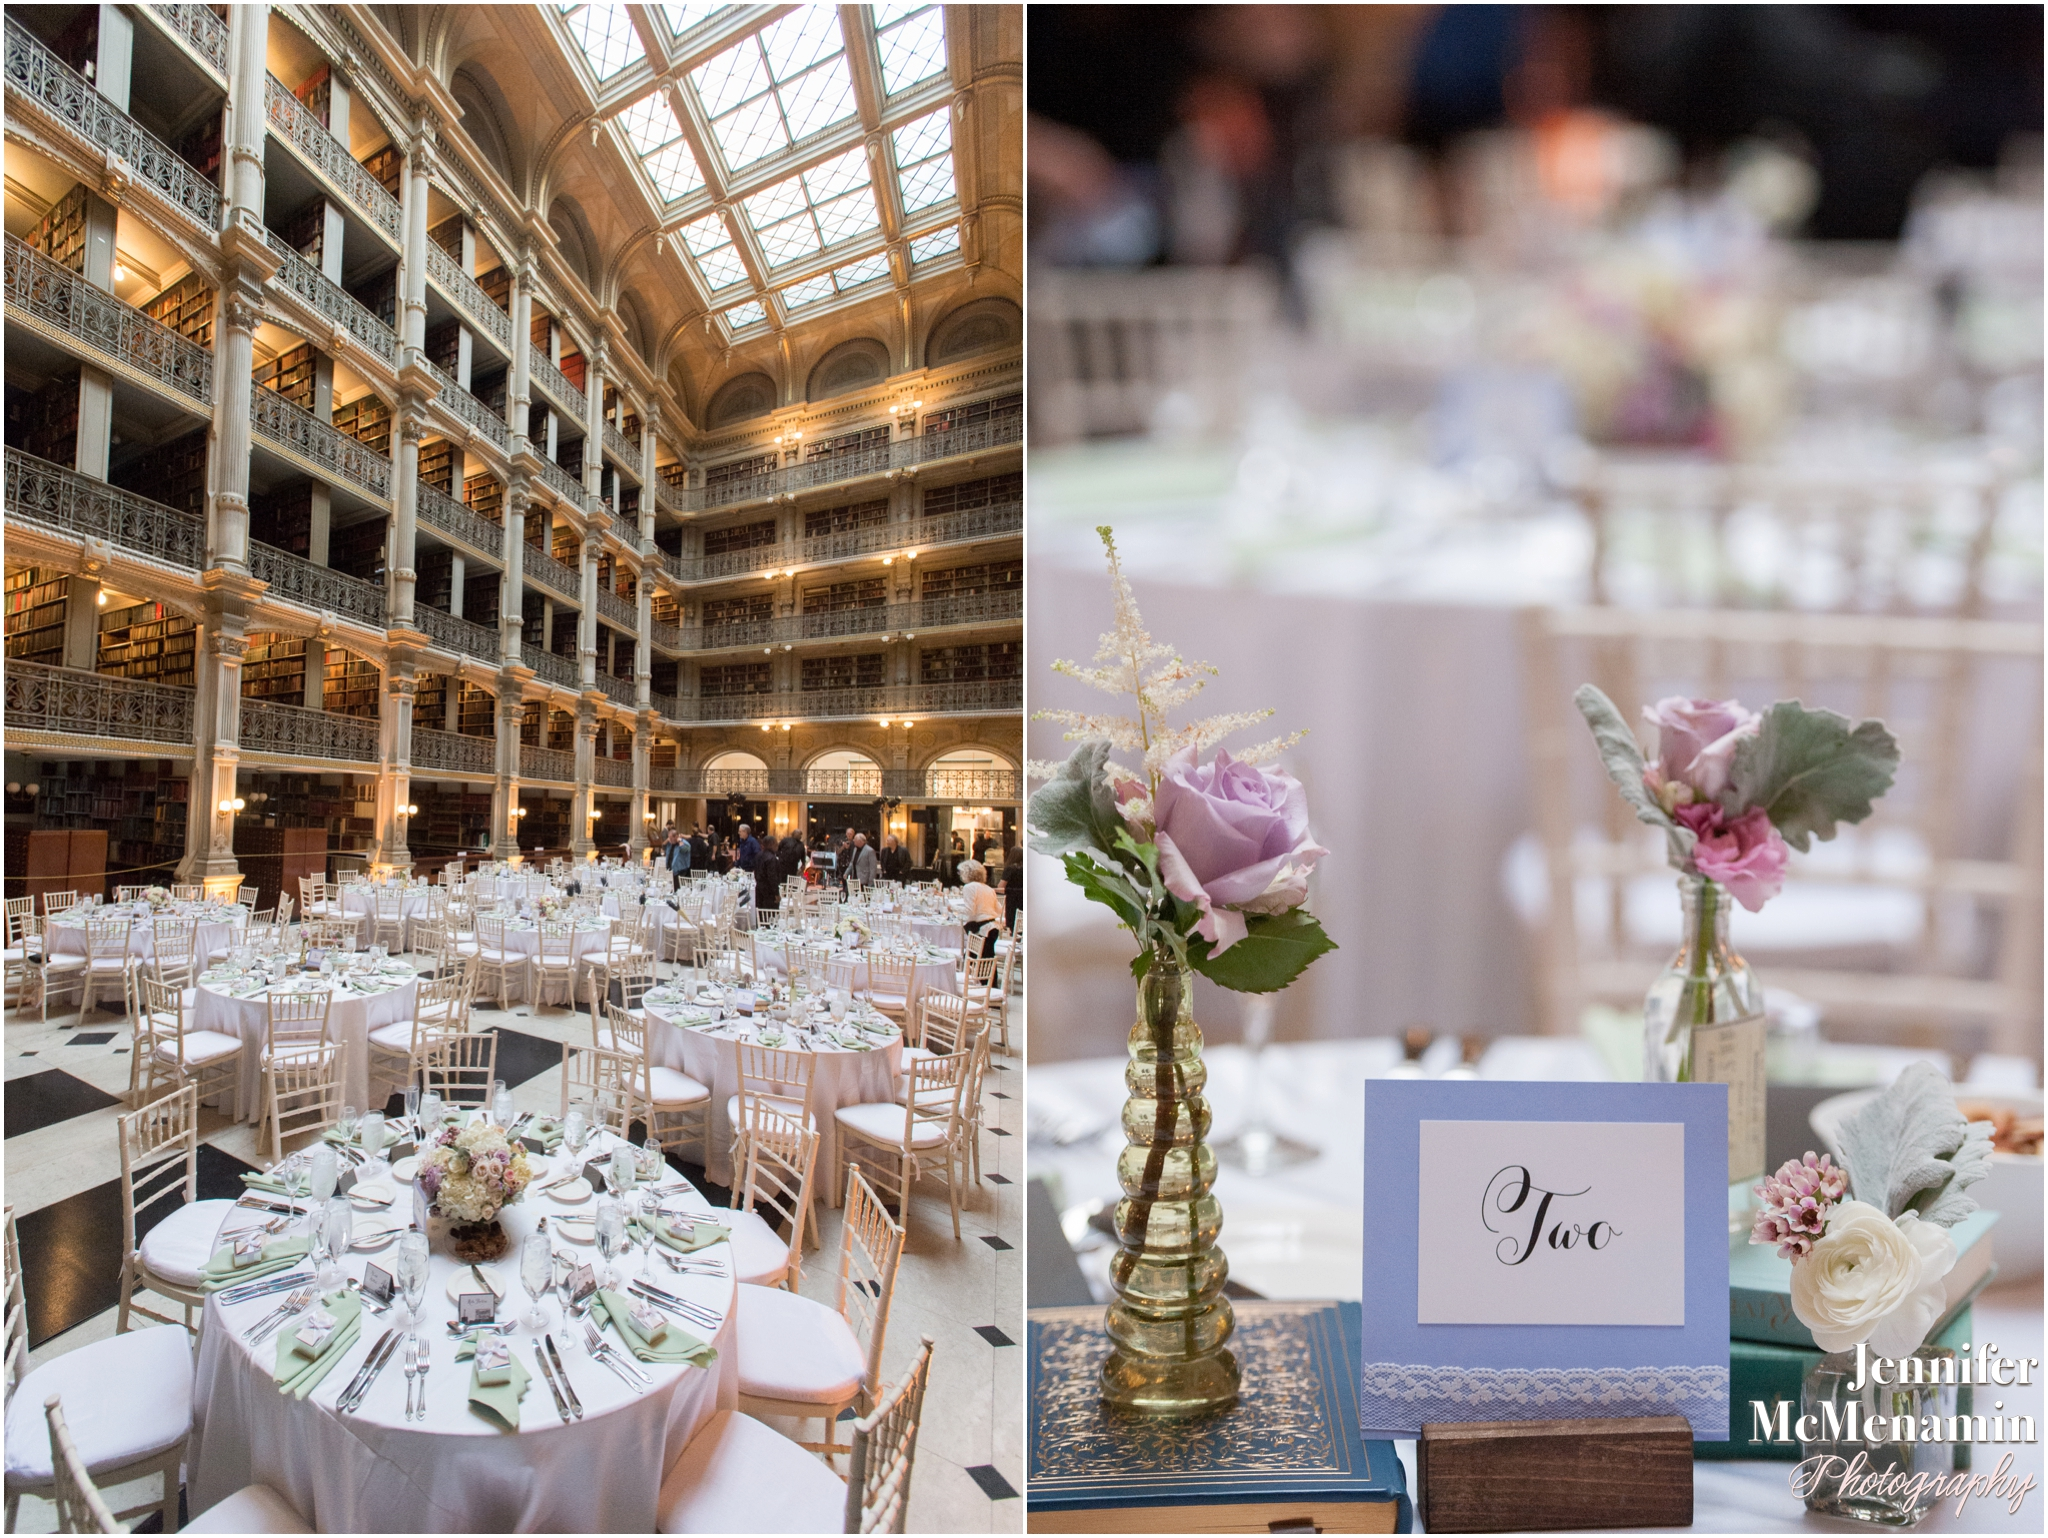 0086-WebbSlivnick_03301-0654_JenniferMcMenaminPhotography_George-Peabody-Library-wedding_Baltimore-wedding-photography_Baltimore-wedding-photographer